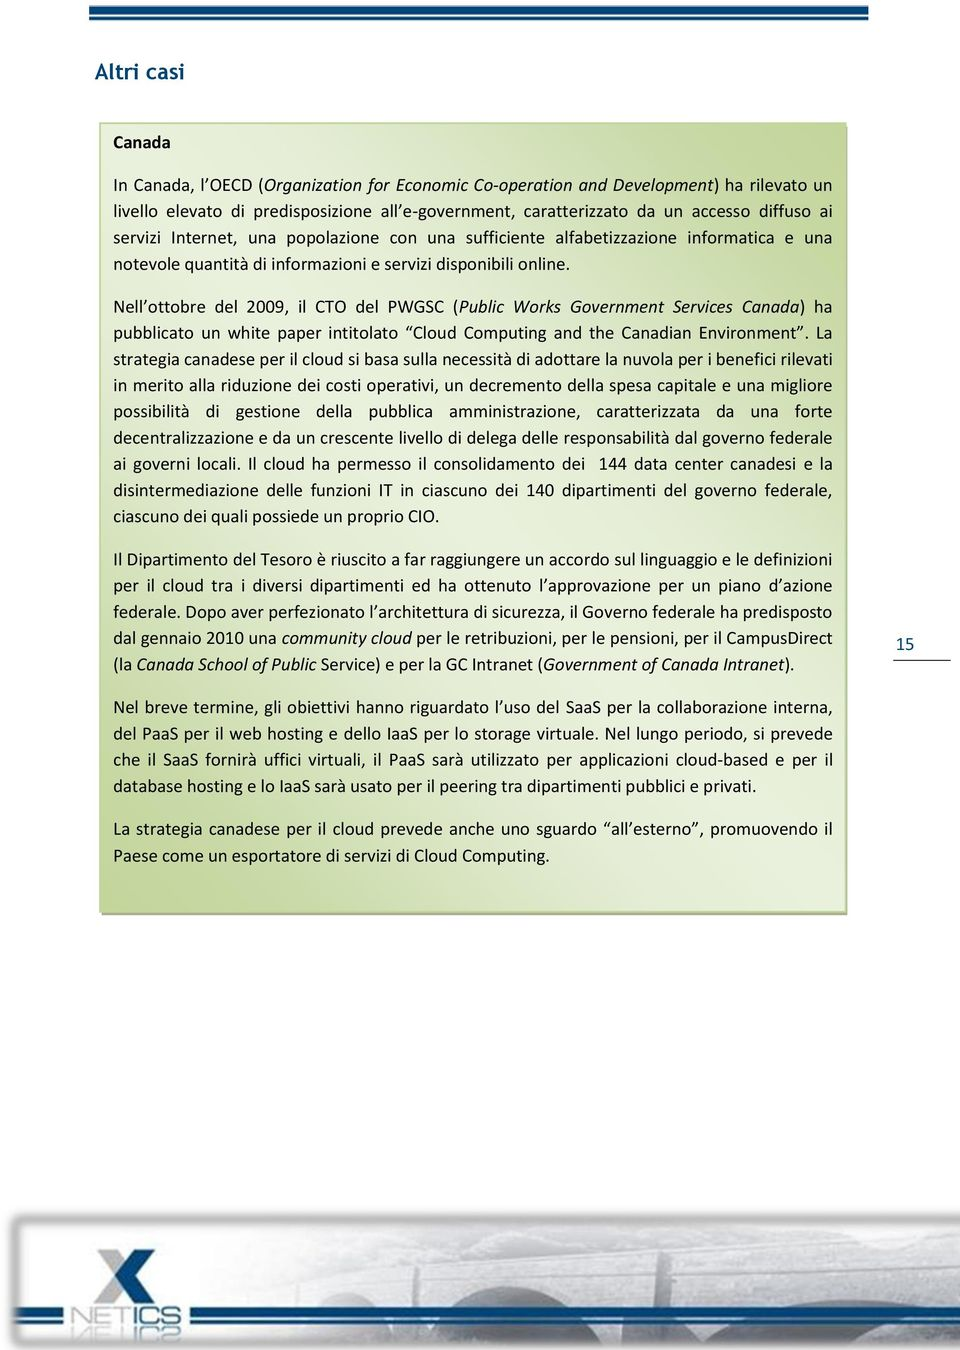 Nell ottobre del 2009, il CTO del PWGSC (Public Works Government Services Canada) ha pubblicato un white paper intitolato Cloud Computing and the Canadian Environment.